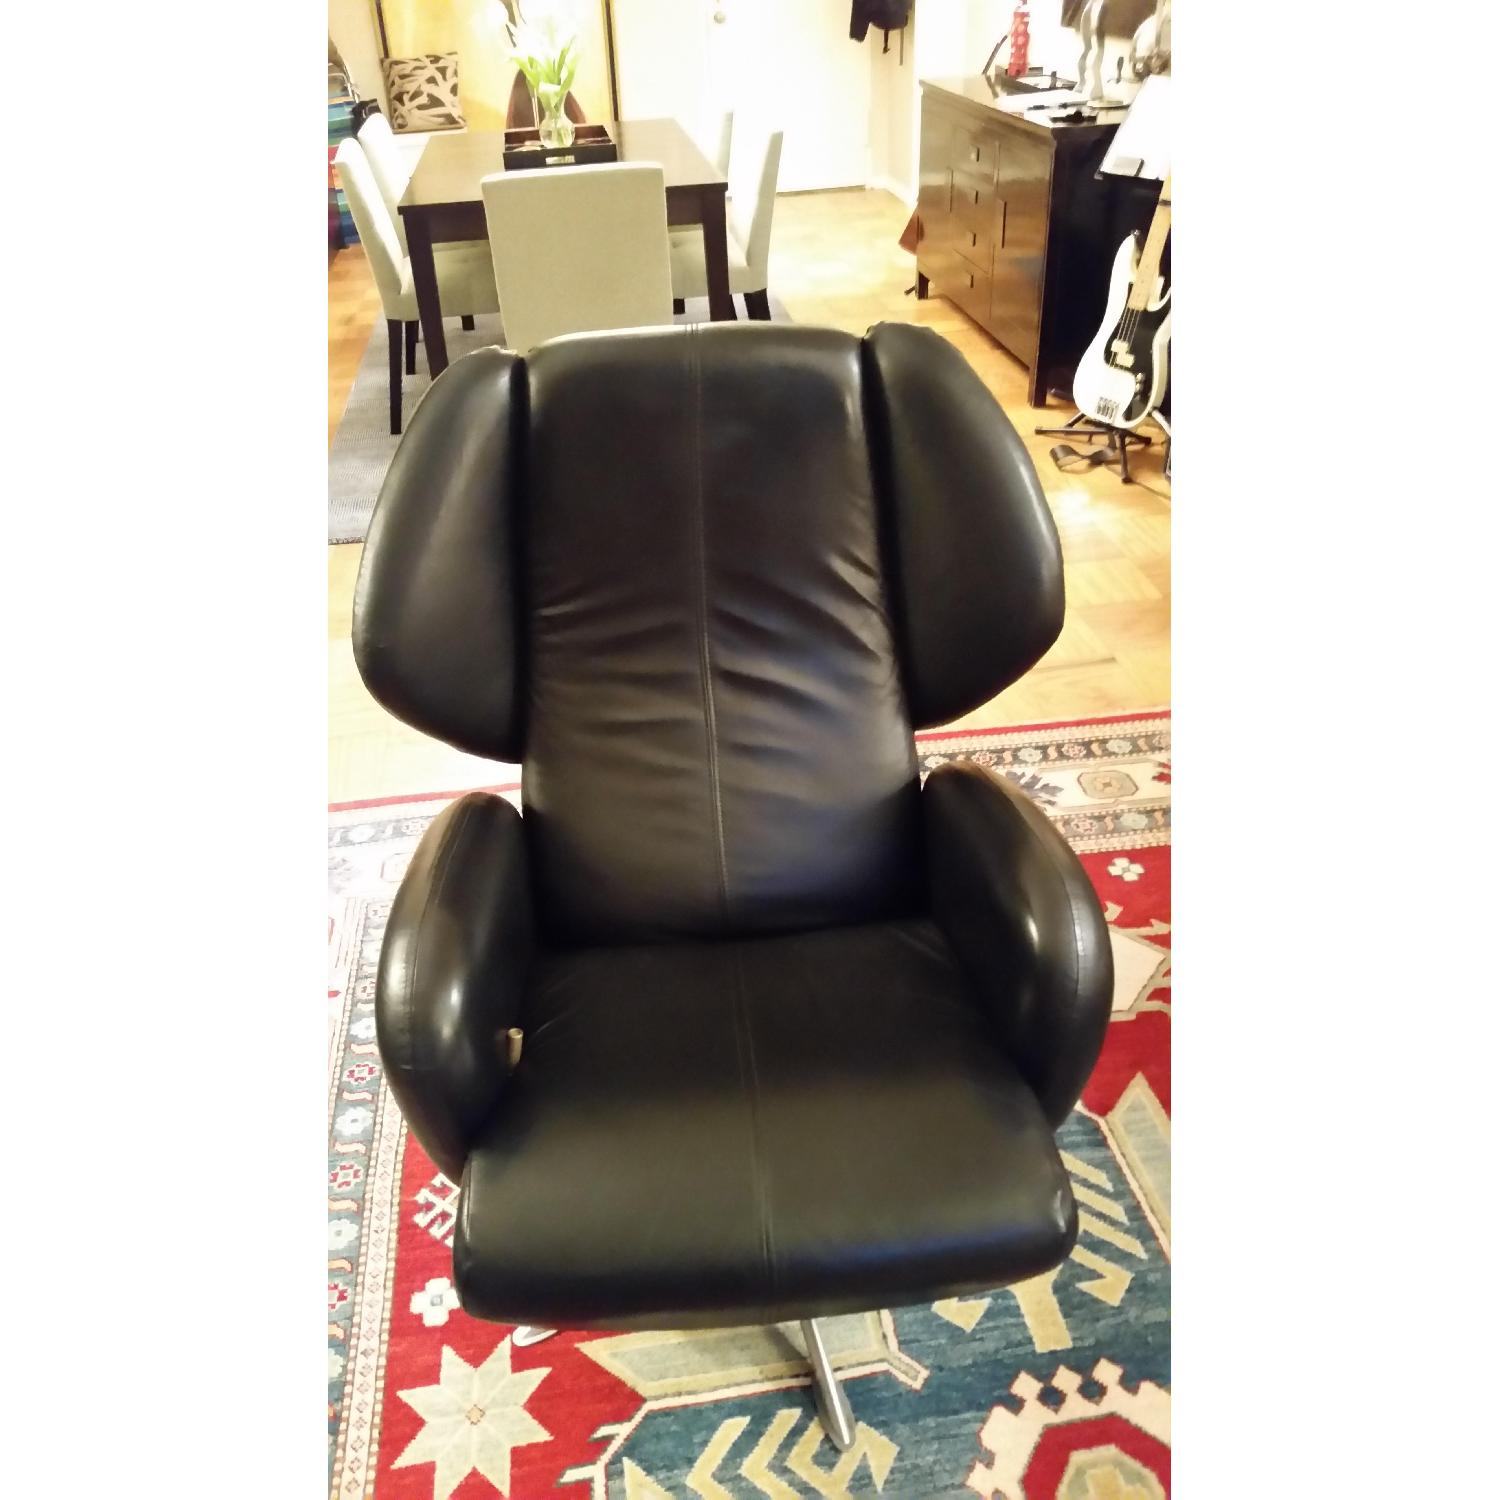 Lee's Art Shop Leather Reading Chair - image-1